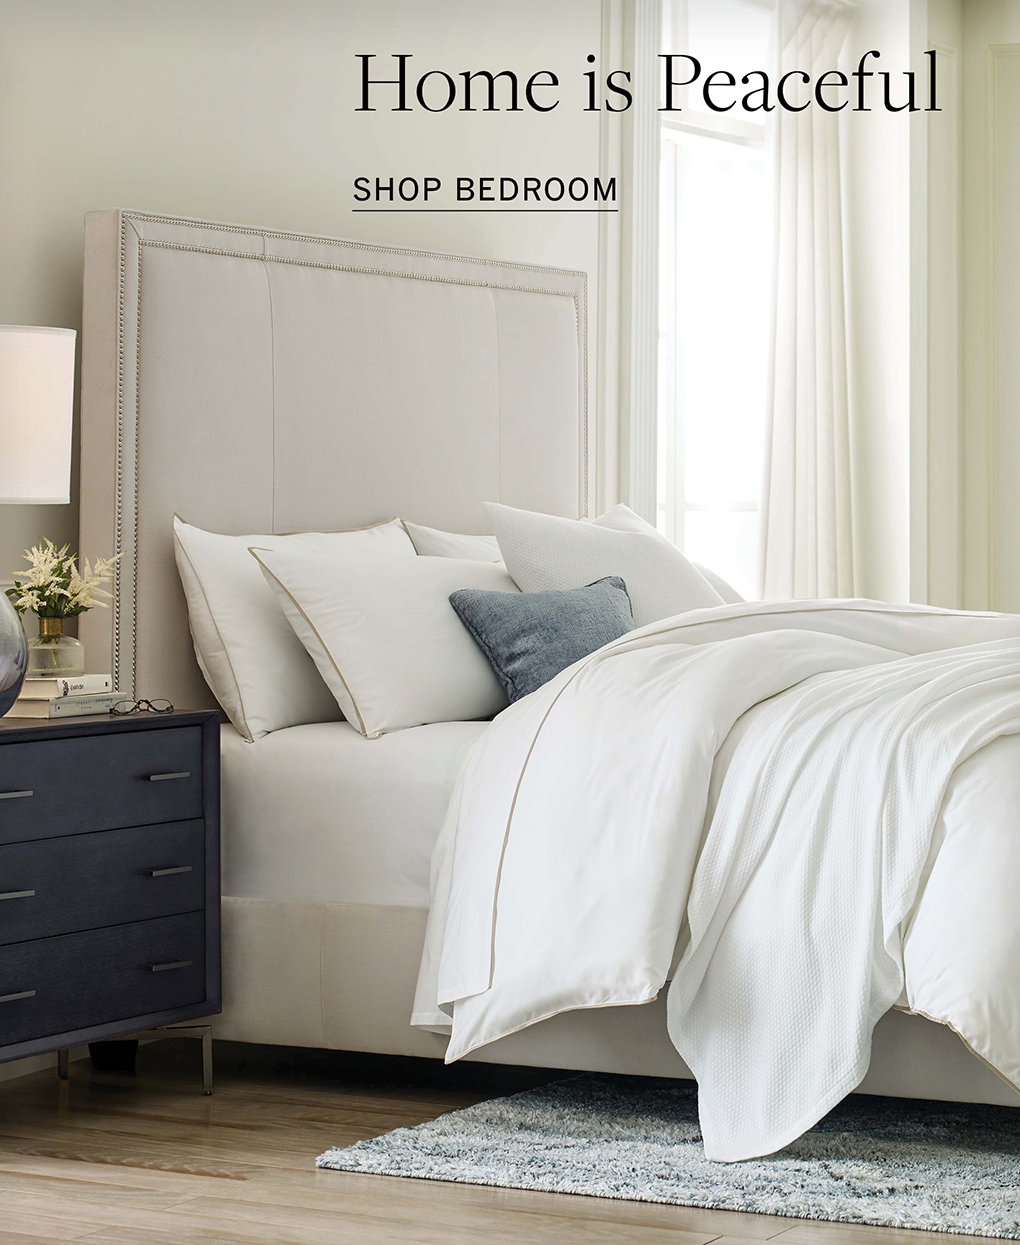 Shop Bedroom